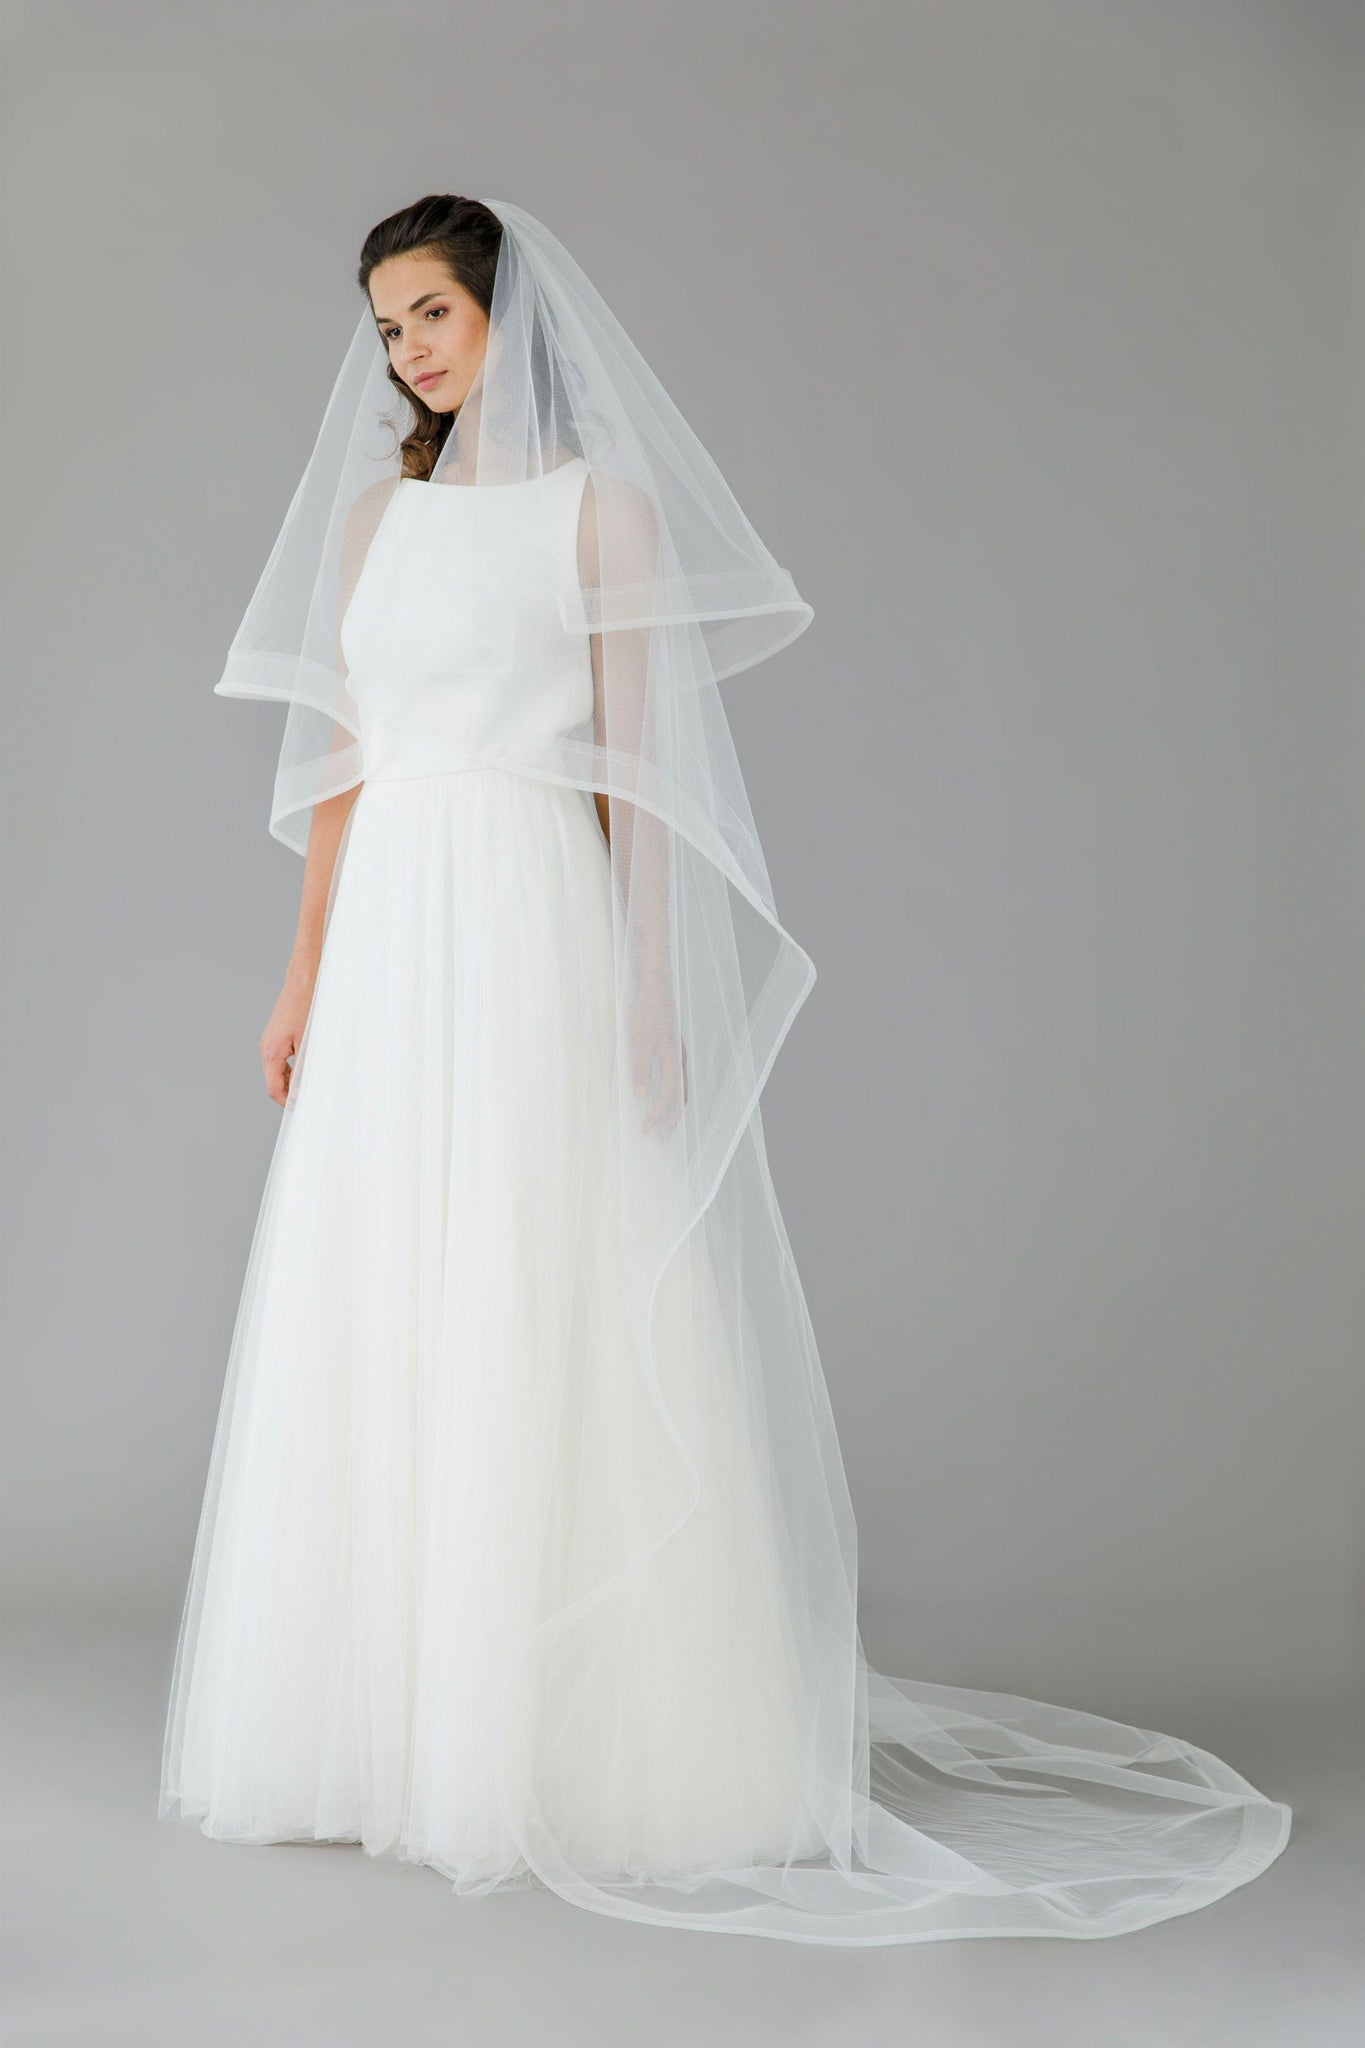 Horsehair two tier wedding veil - 'Atlas'